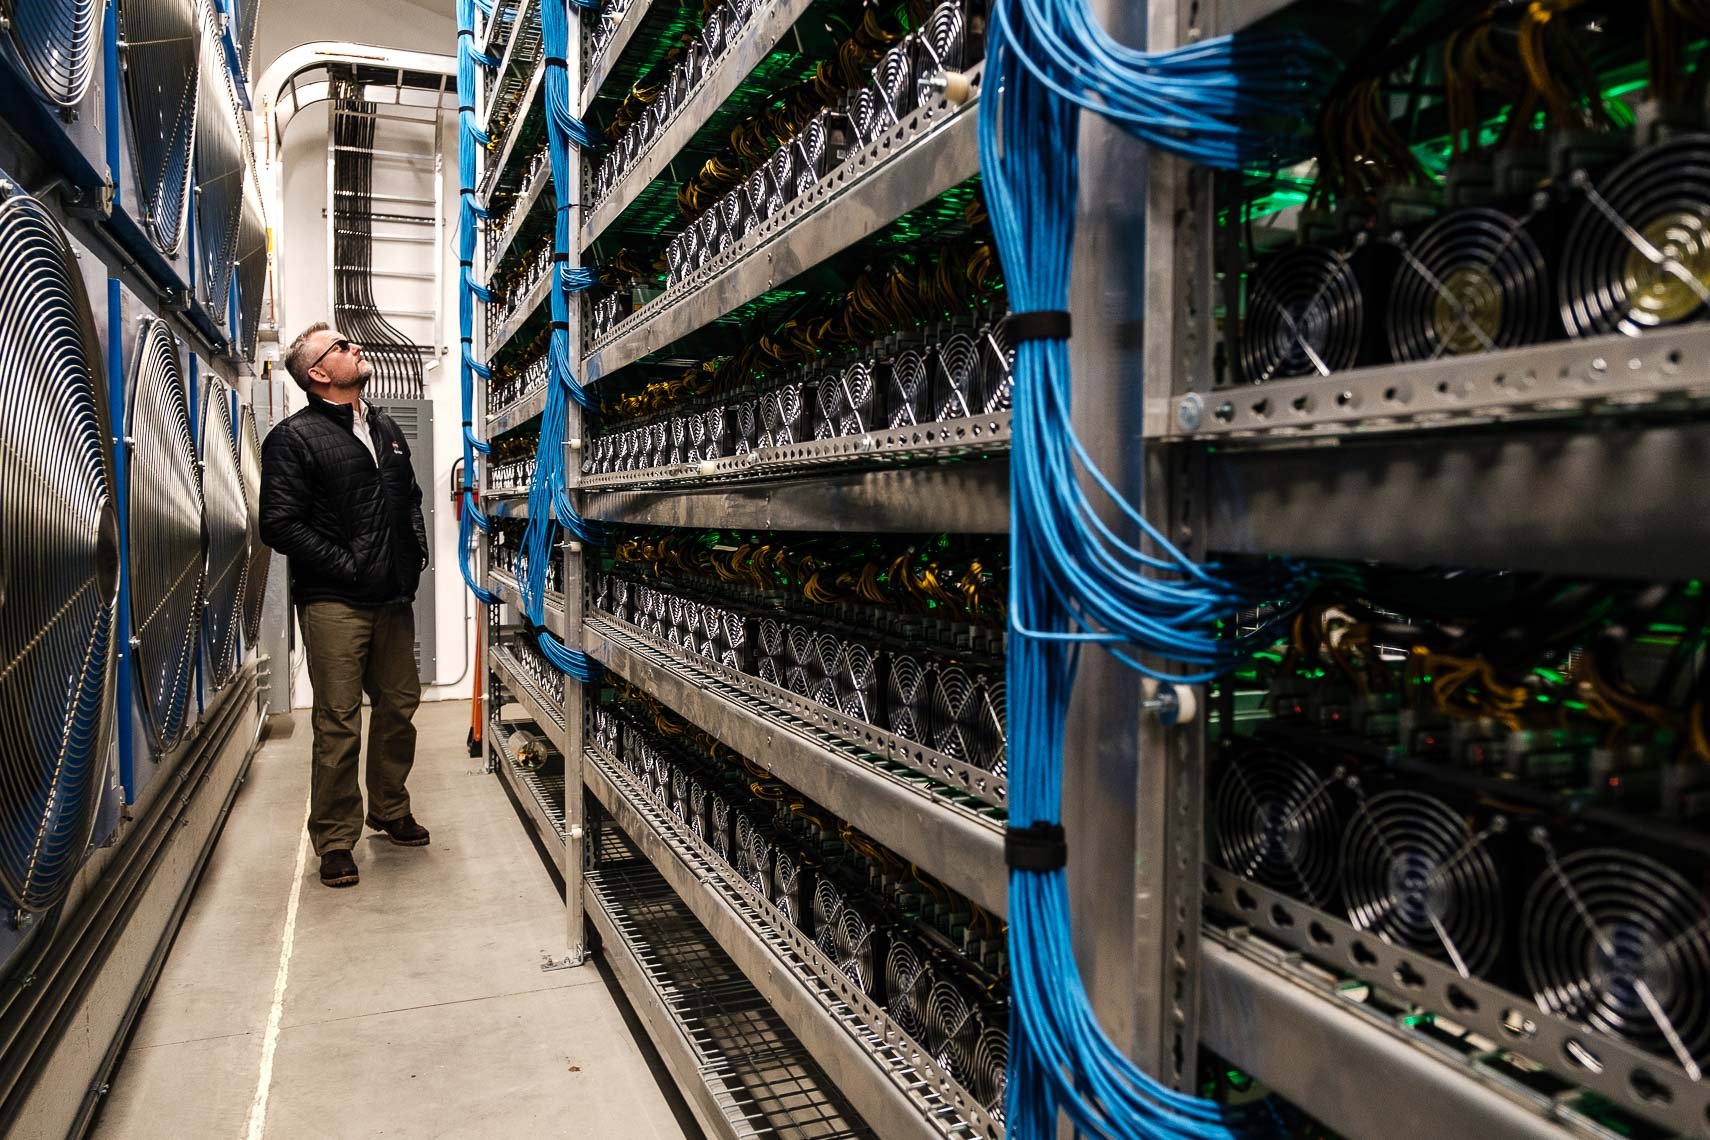 patrick_cavan_brown_bitcoin_mining_wenatchee_washington-4954